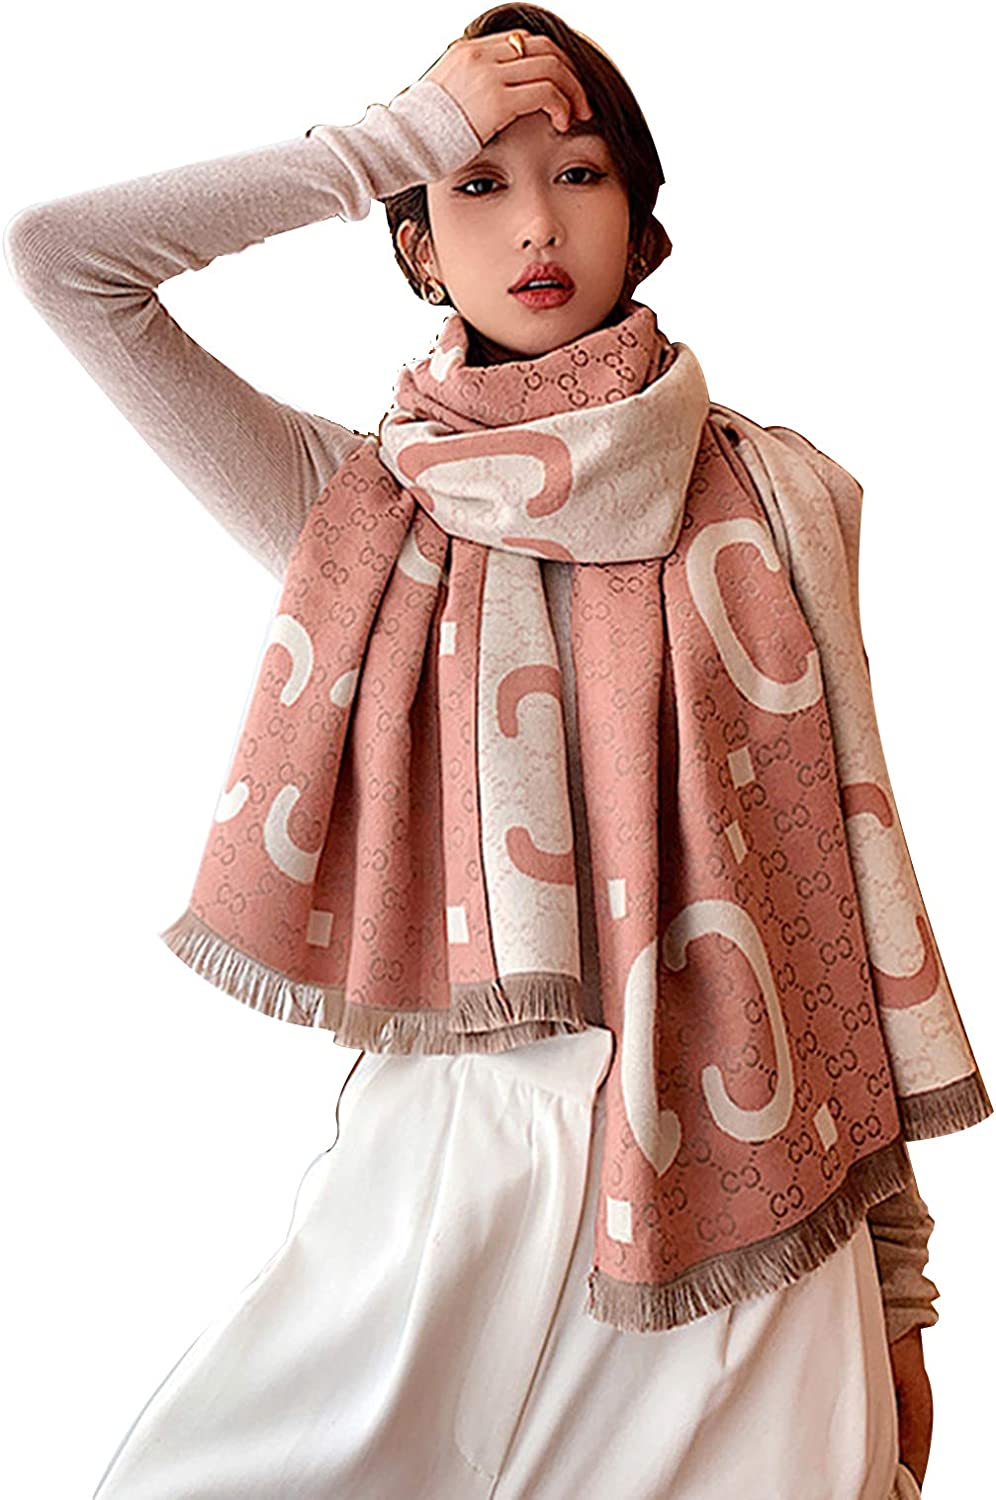 Letters Fashion Warm Double-Sided Cashmere Scarf Lightweight Scarfs for Women Large Soft Shawls and Wraps